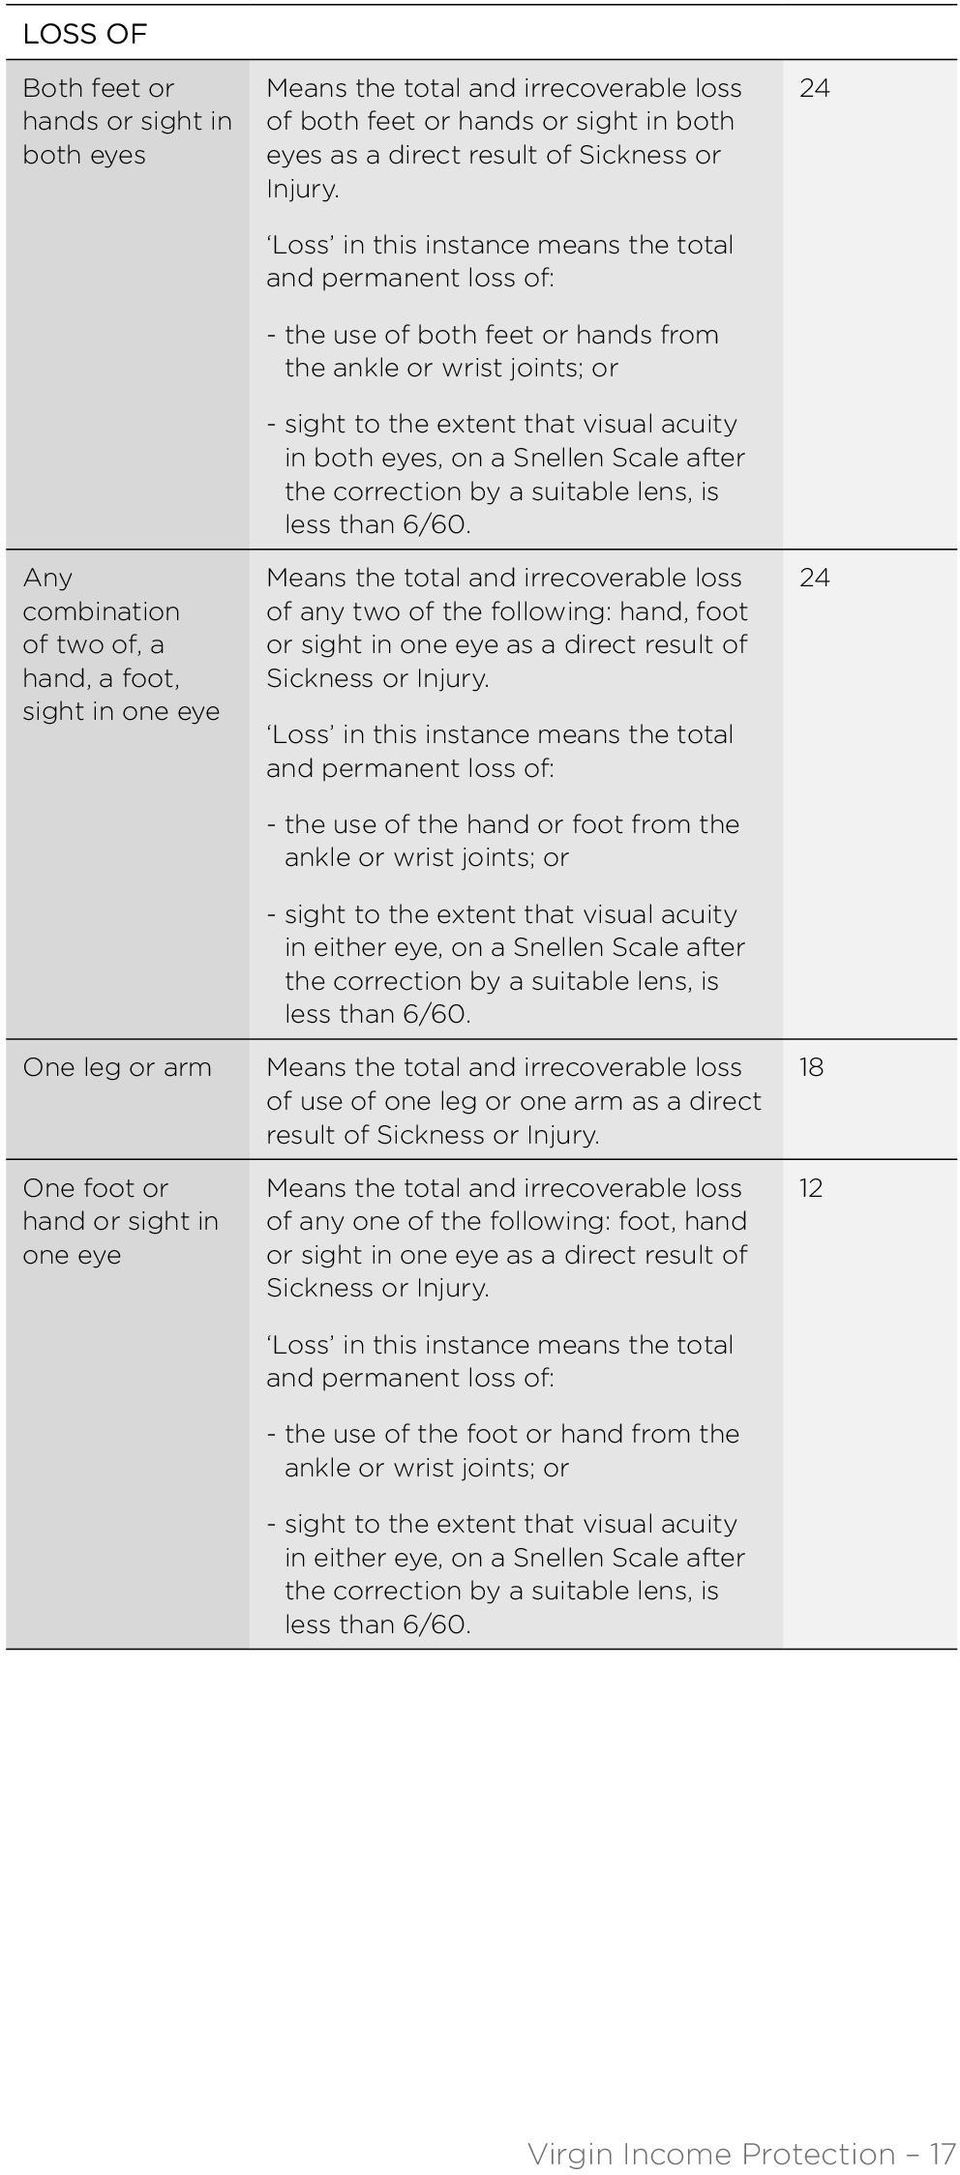 Loss in this instance means the total and permanent loss of: - the use of both feet or hands from the ankle or wrist joints; or - sight to the extent that visual acuity in both eyes, on a Snellen